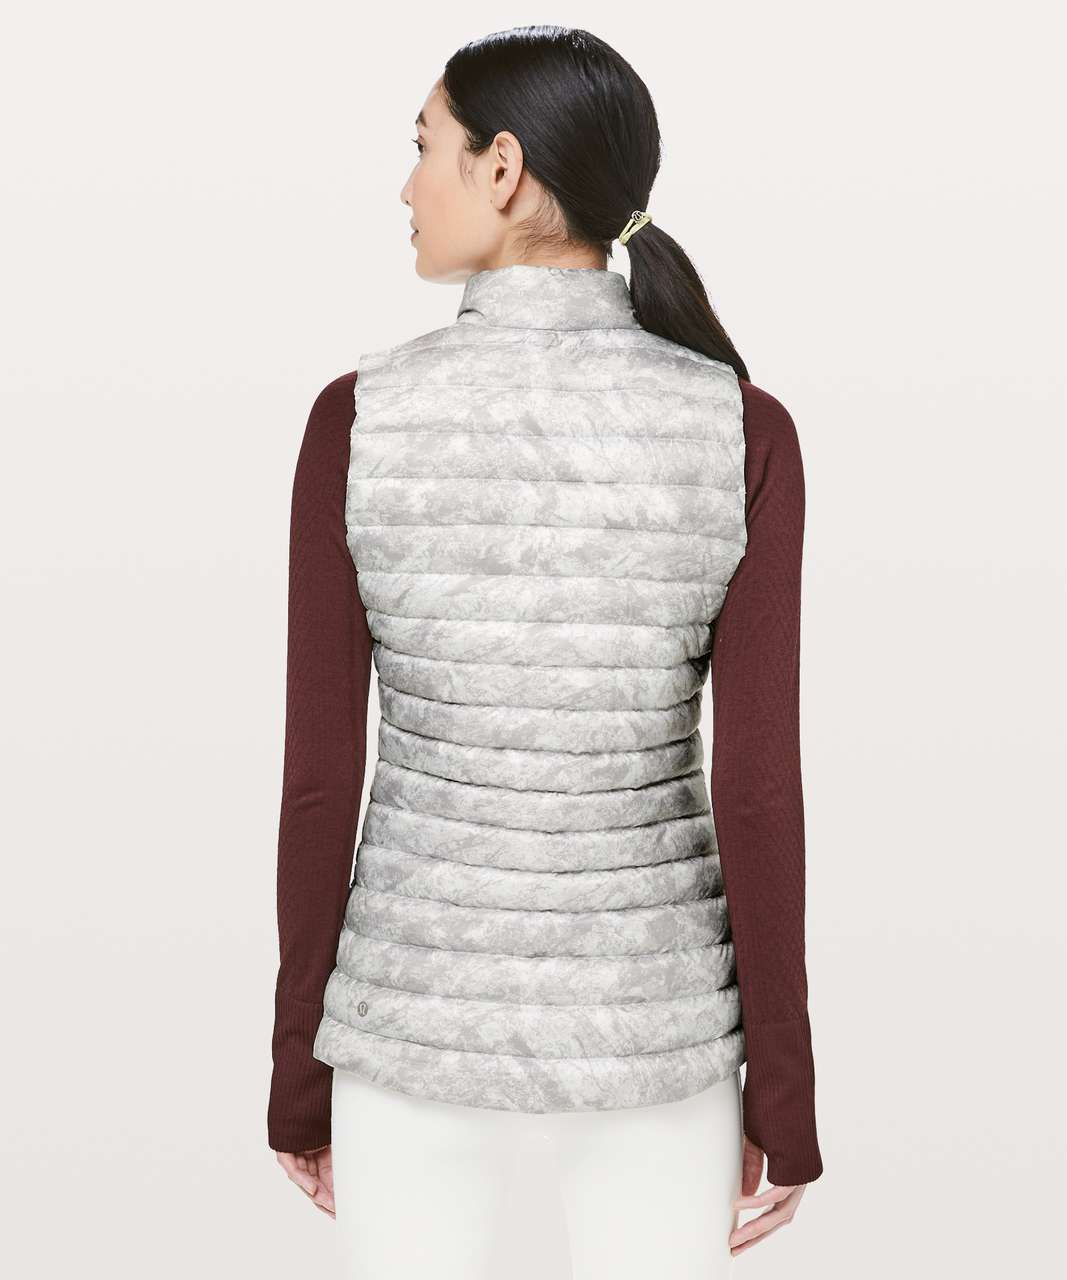 Lululemon Pack It Down Again Vest - Washed Marble Alpine White Dark Chrome